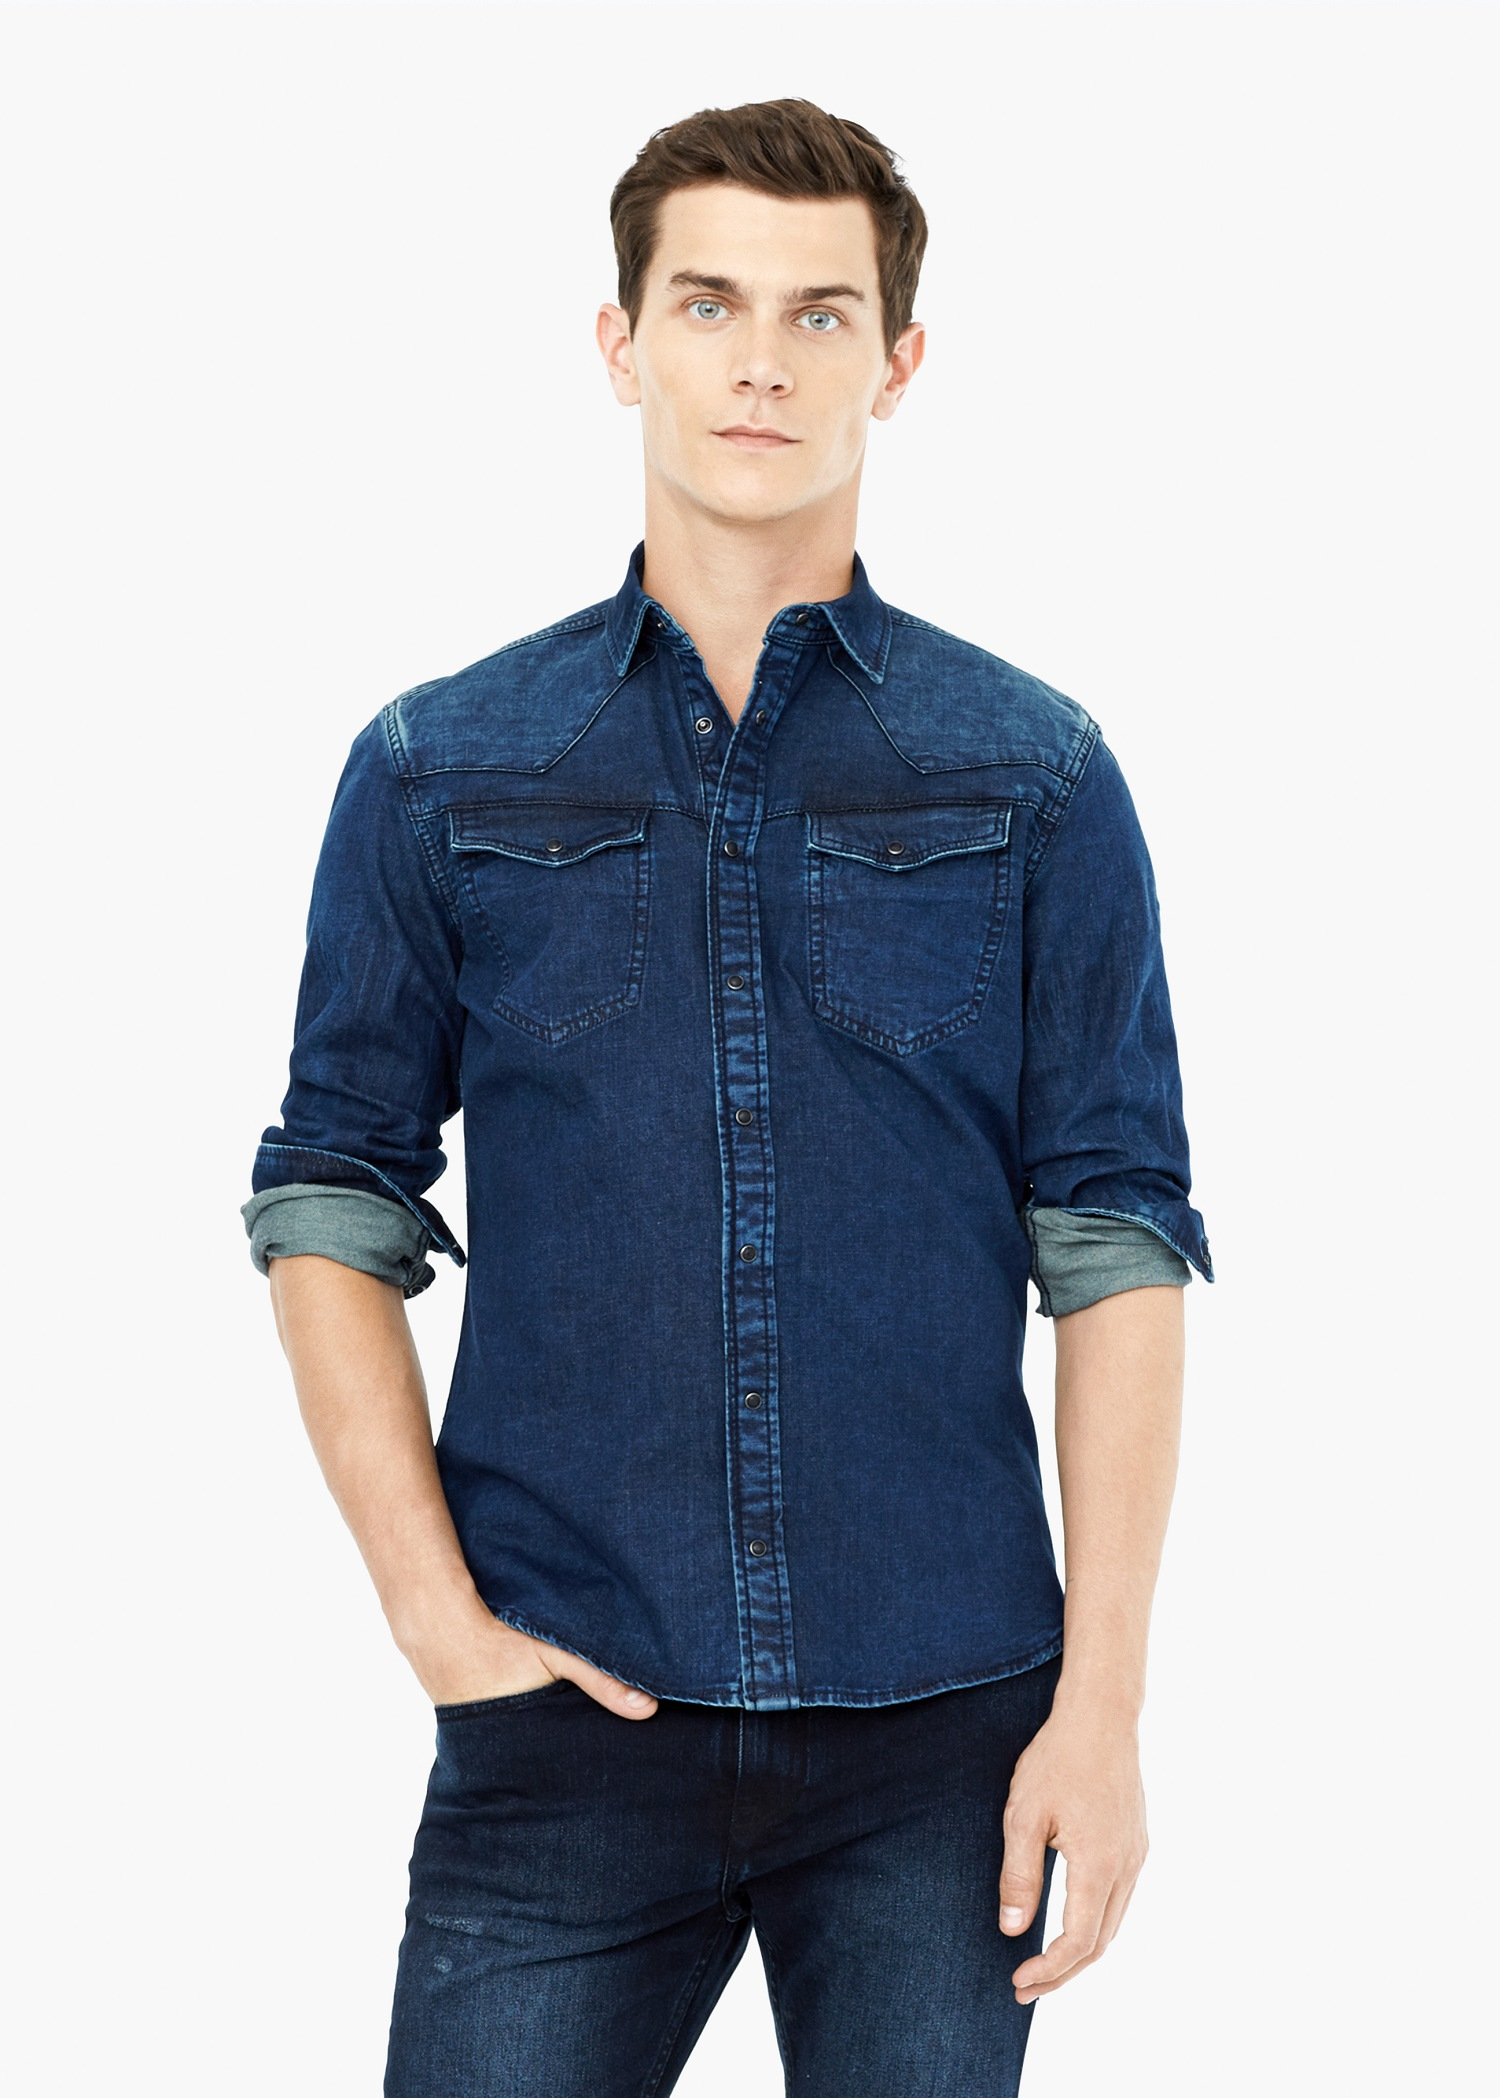 Shop men's denim shirts at MR PORTER, the men's style destination. Discover our selection of over designers to find your perfect look.